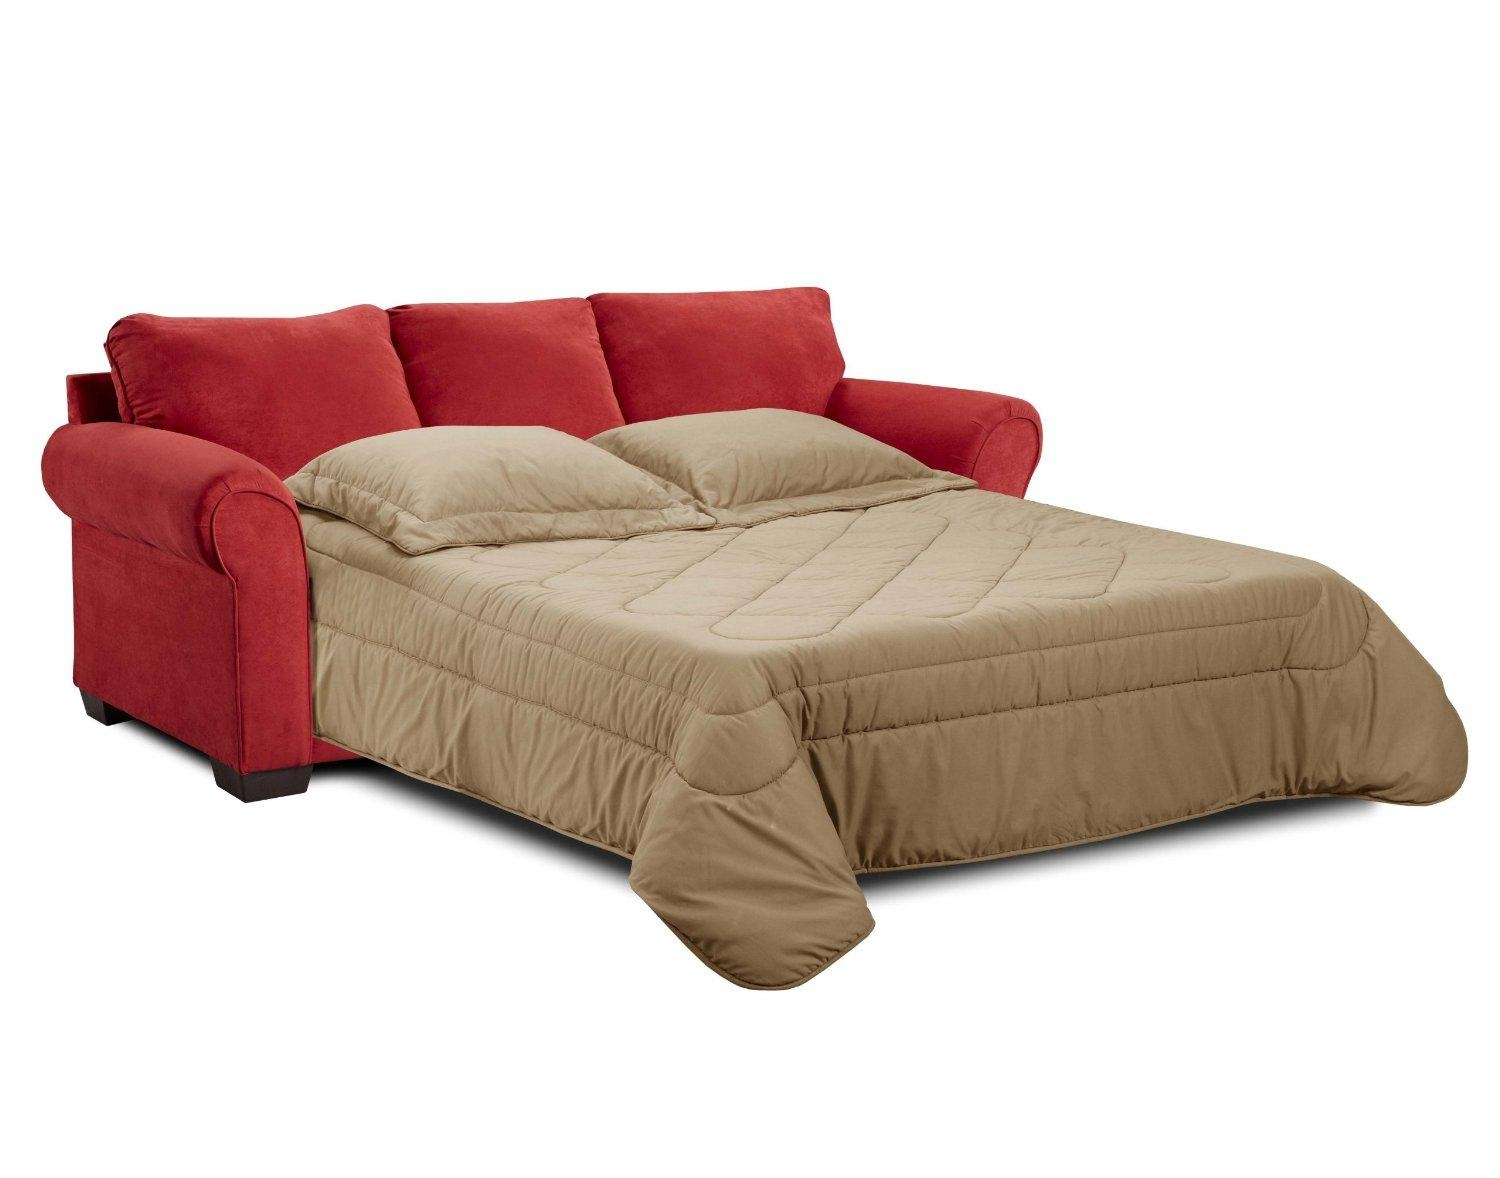 20 inspirations queen size convertible sofa beds sofa ideas for Divan convertible